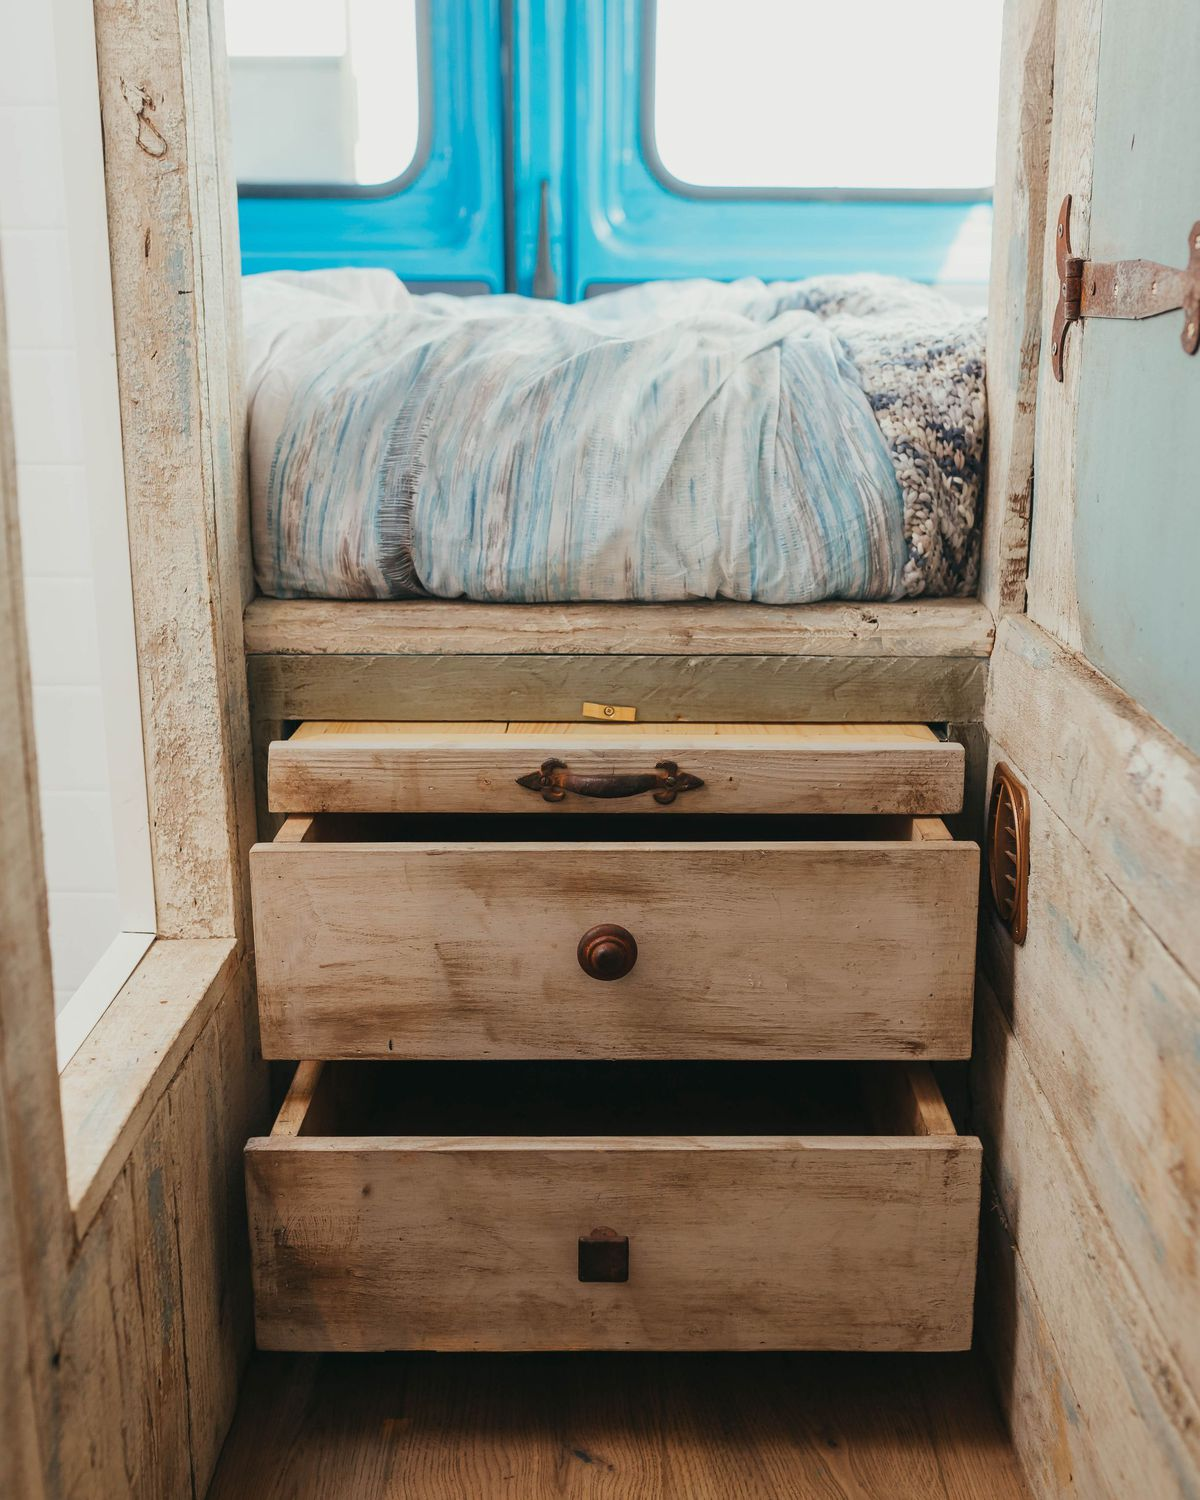 A photo of wooden drawers that pull out for storage underneath the bed. There's also a window to the left and the camper's blue doors in the rear.